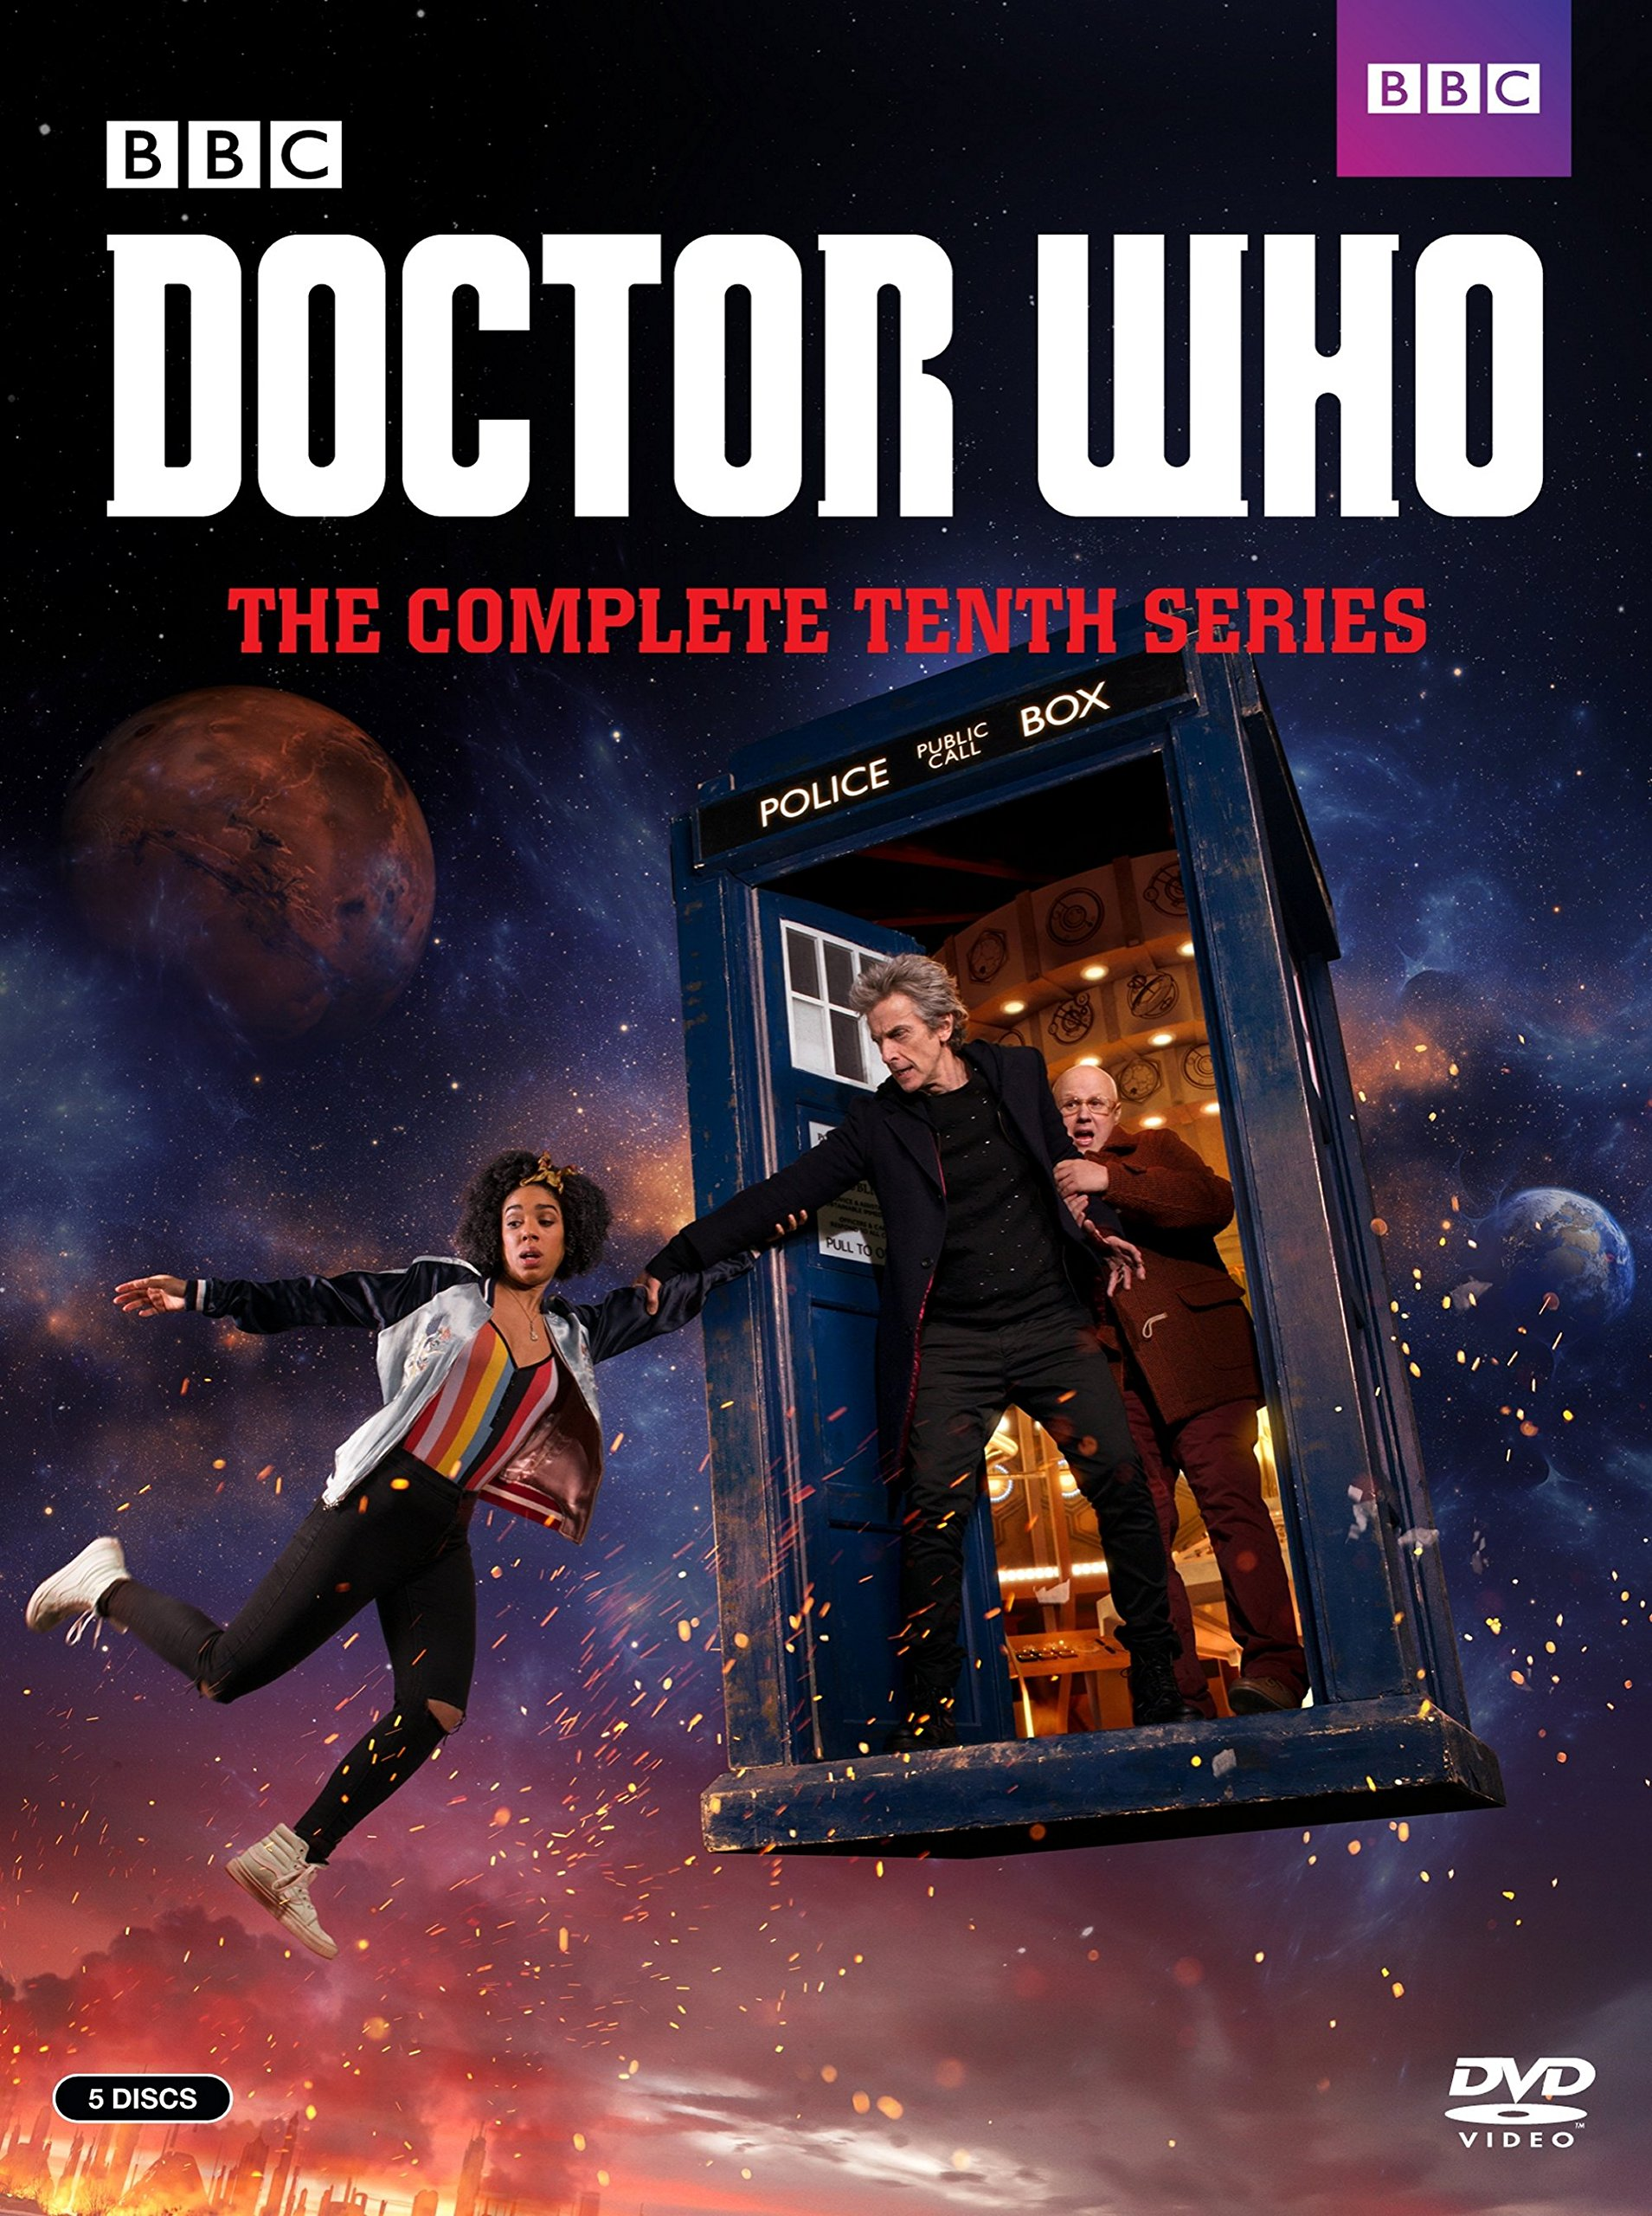 Doctor Who: The Complete Tenth Series by BBC